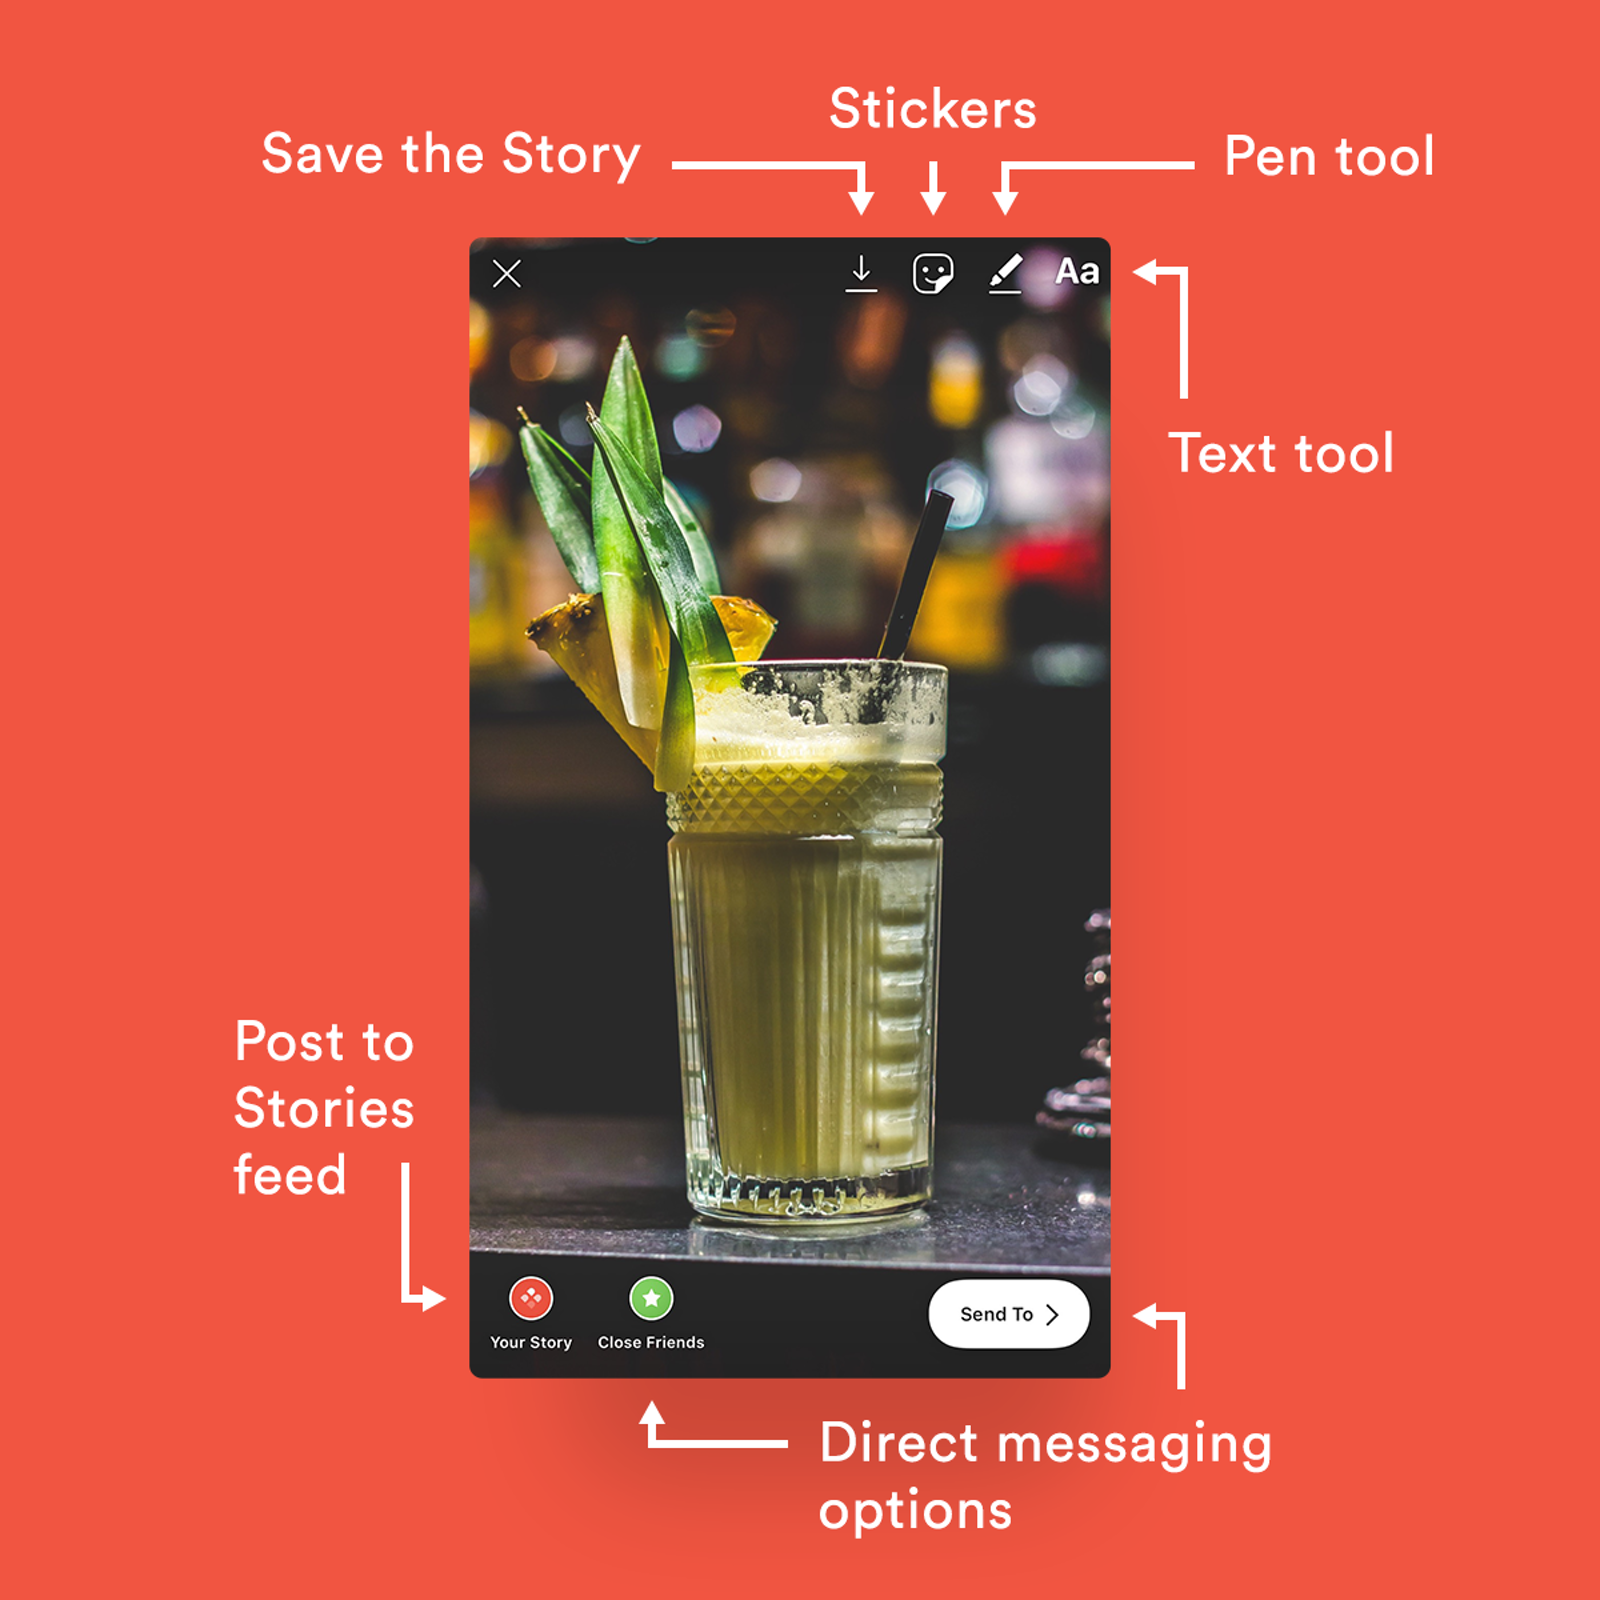 Features and tools on Stories